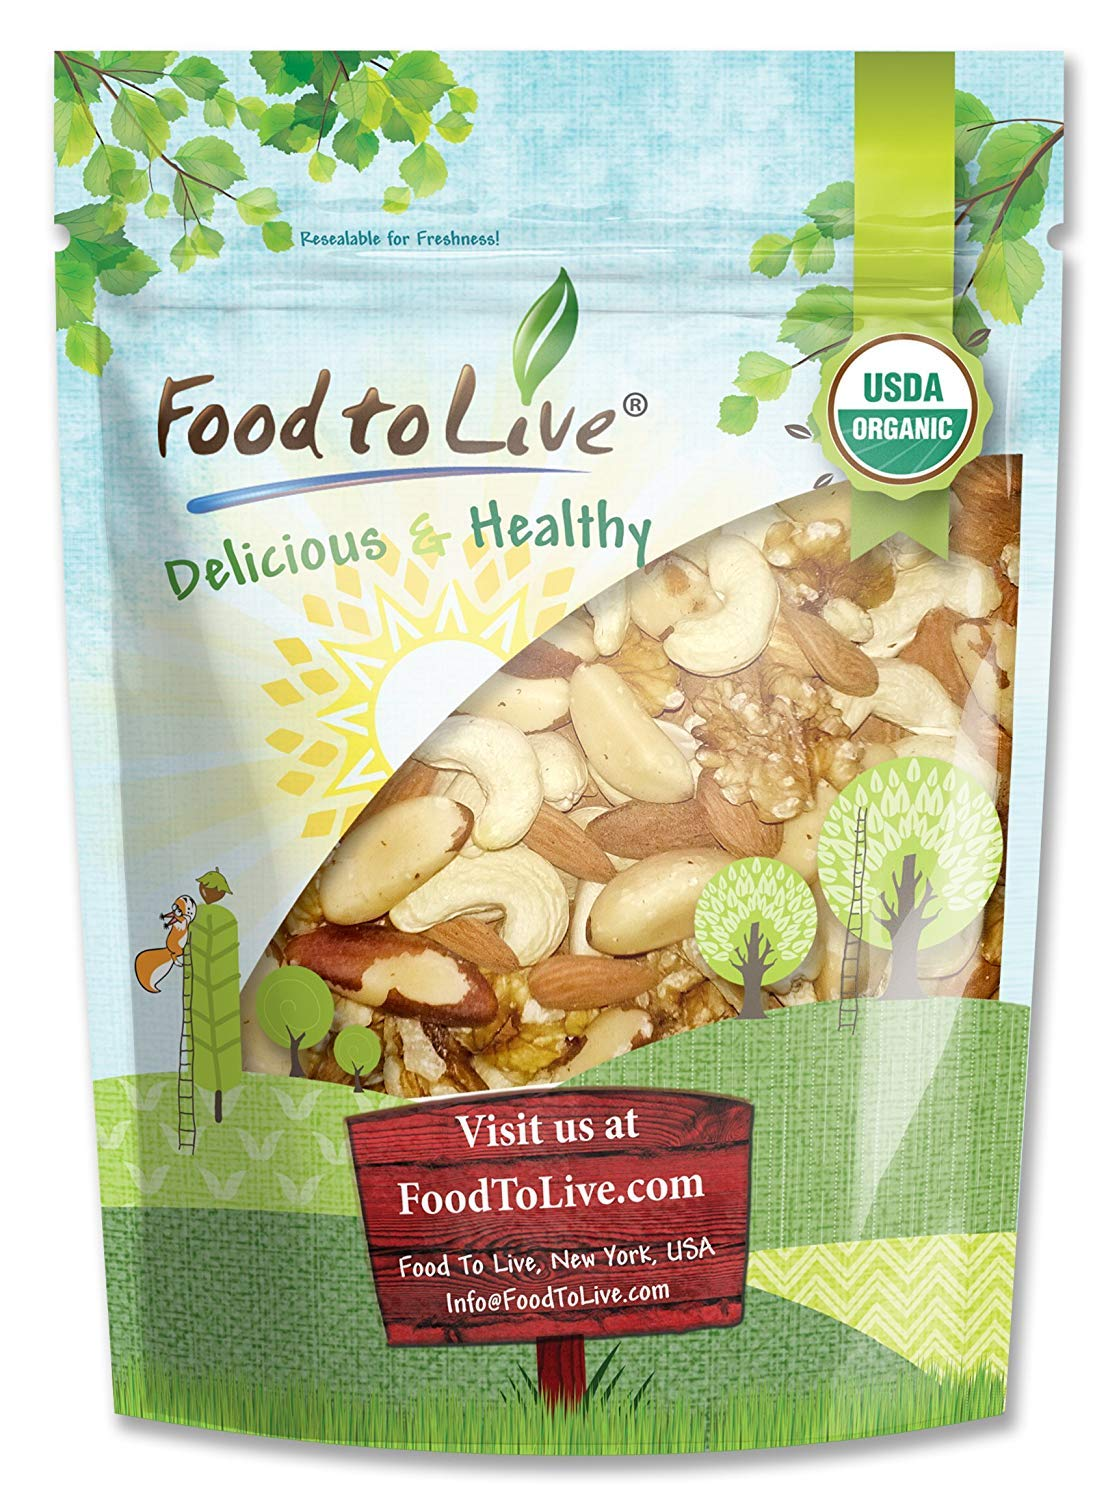 Healthy Mix of Certified Organic Raw Nuts by Food to Live (Cashews, Brazil Nuts, Walnuts, Almonds), Unsalted, Bulk — 1 Pound